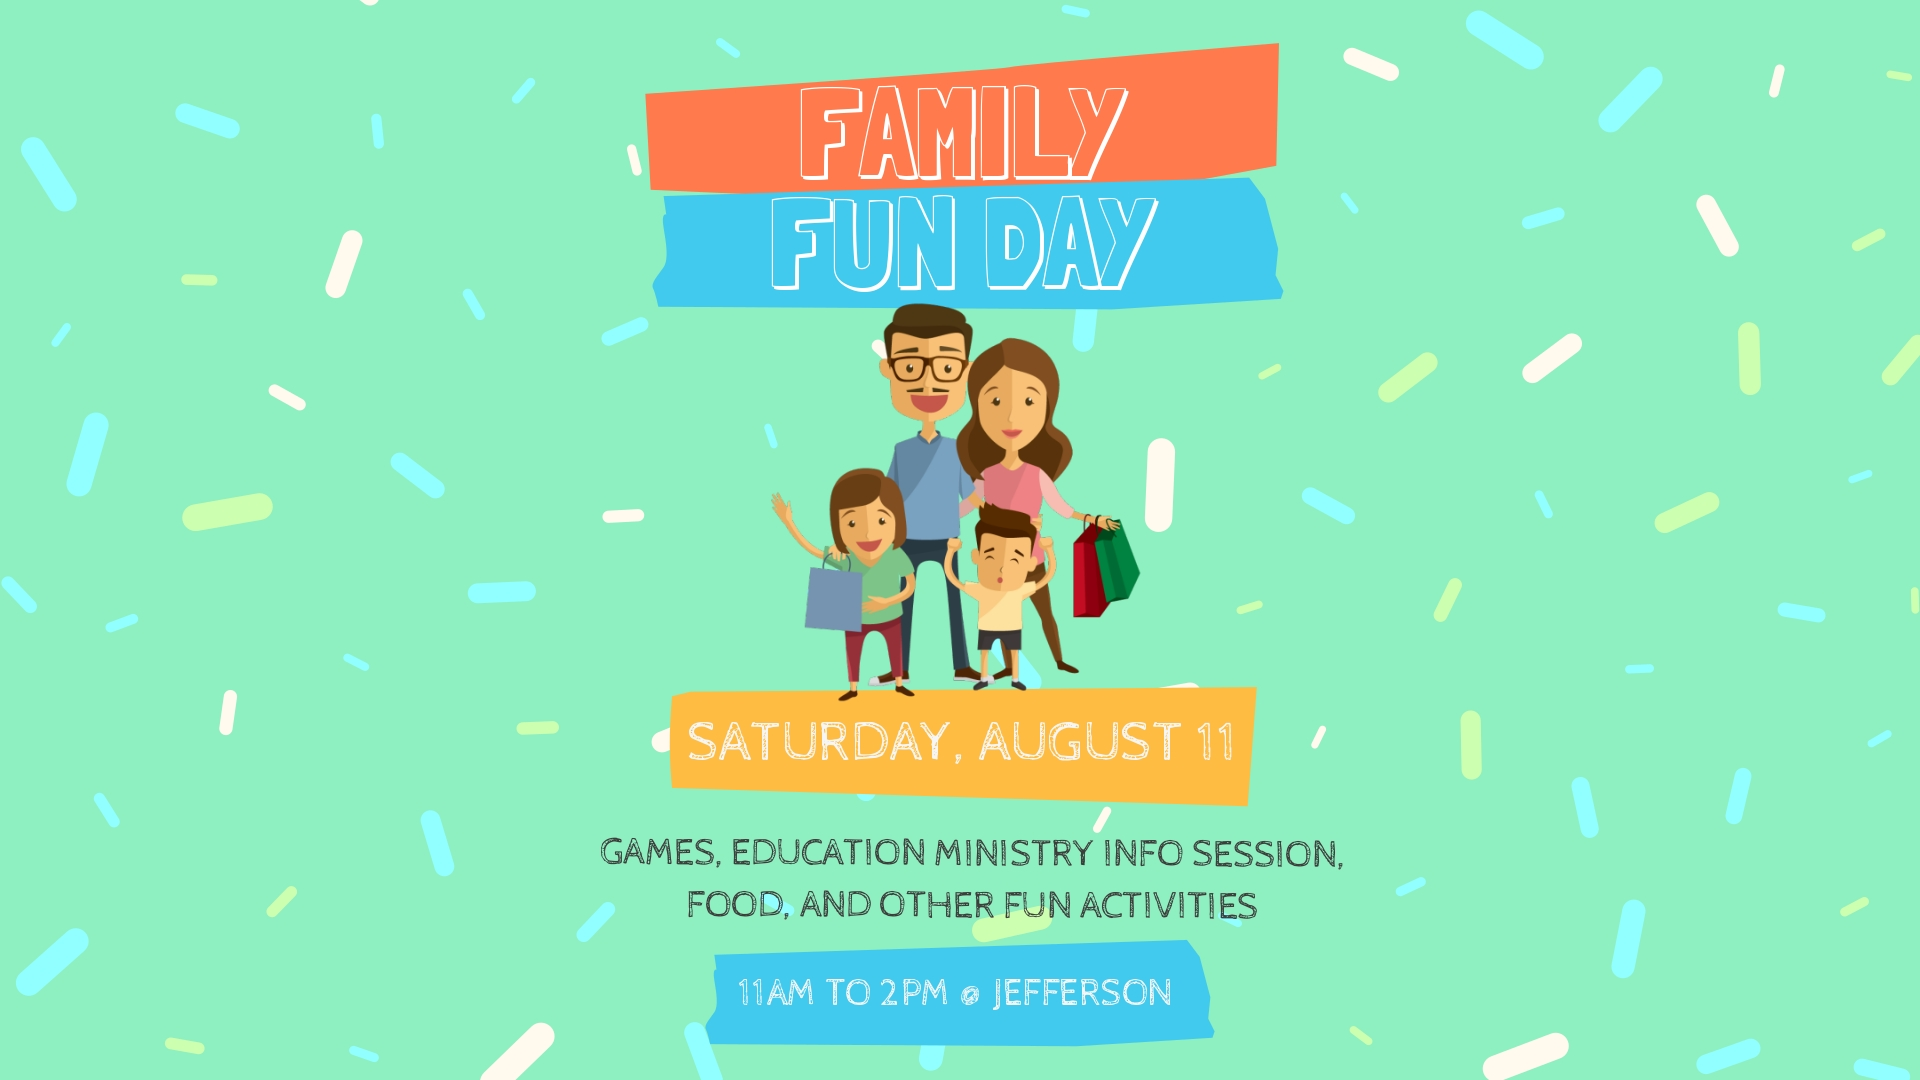 Family Fun Day image